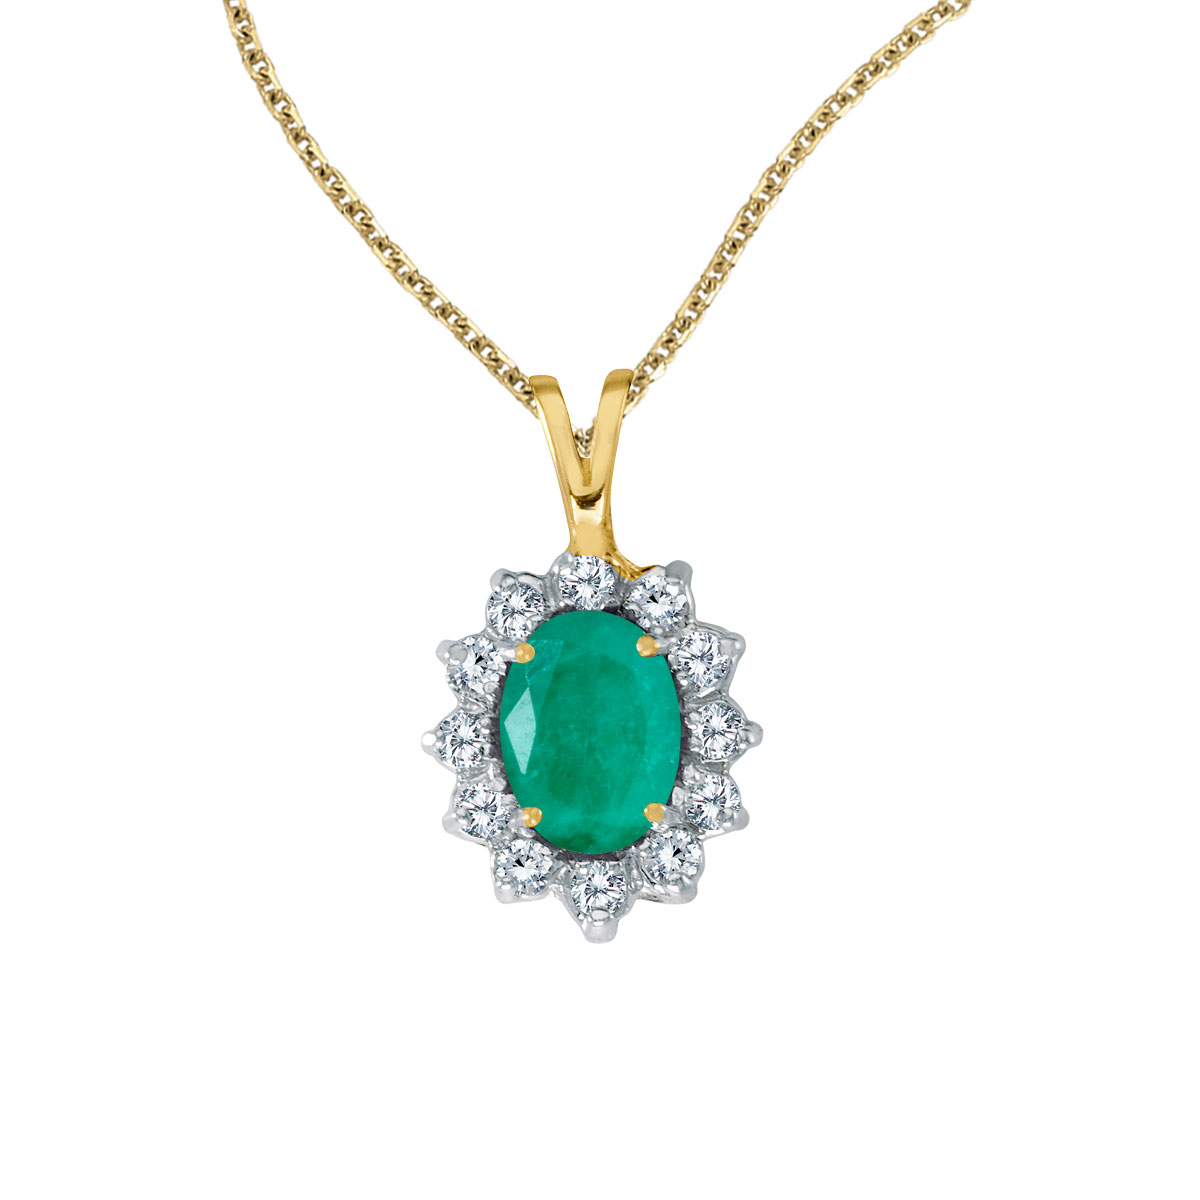 8x6 mm emerald surrounded by .30 carats of shimmering diamonds set in 14k yellow gold. Perfect fo...